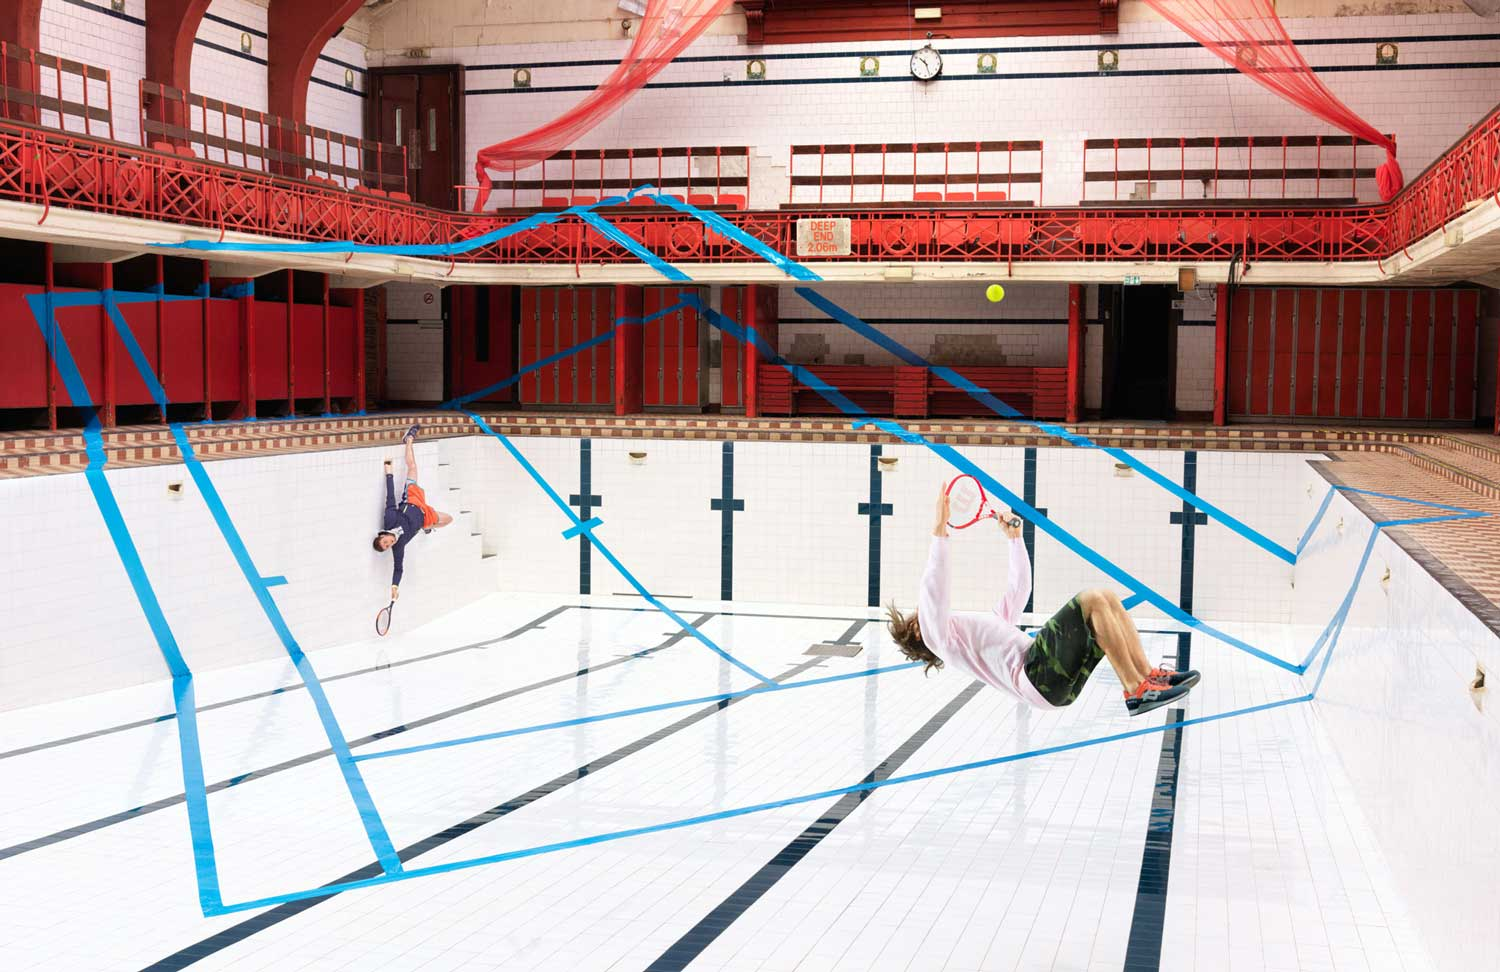 Joseph Ford Captures A Game Of Tennis In Abandoned Swimming Pool